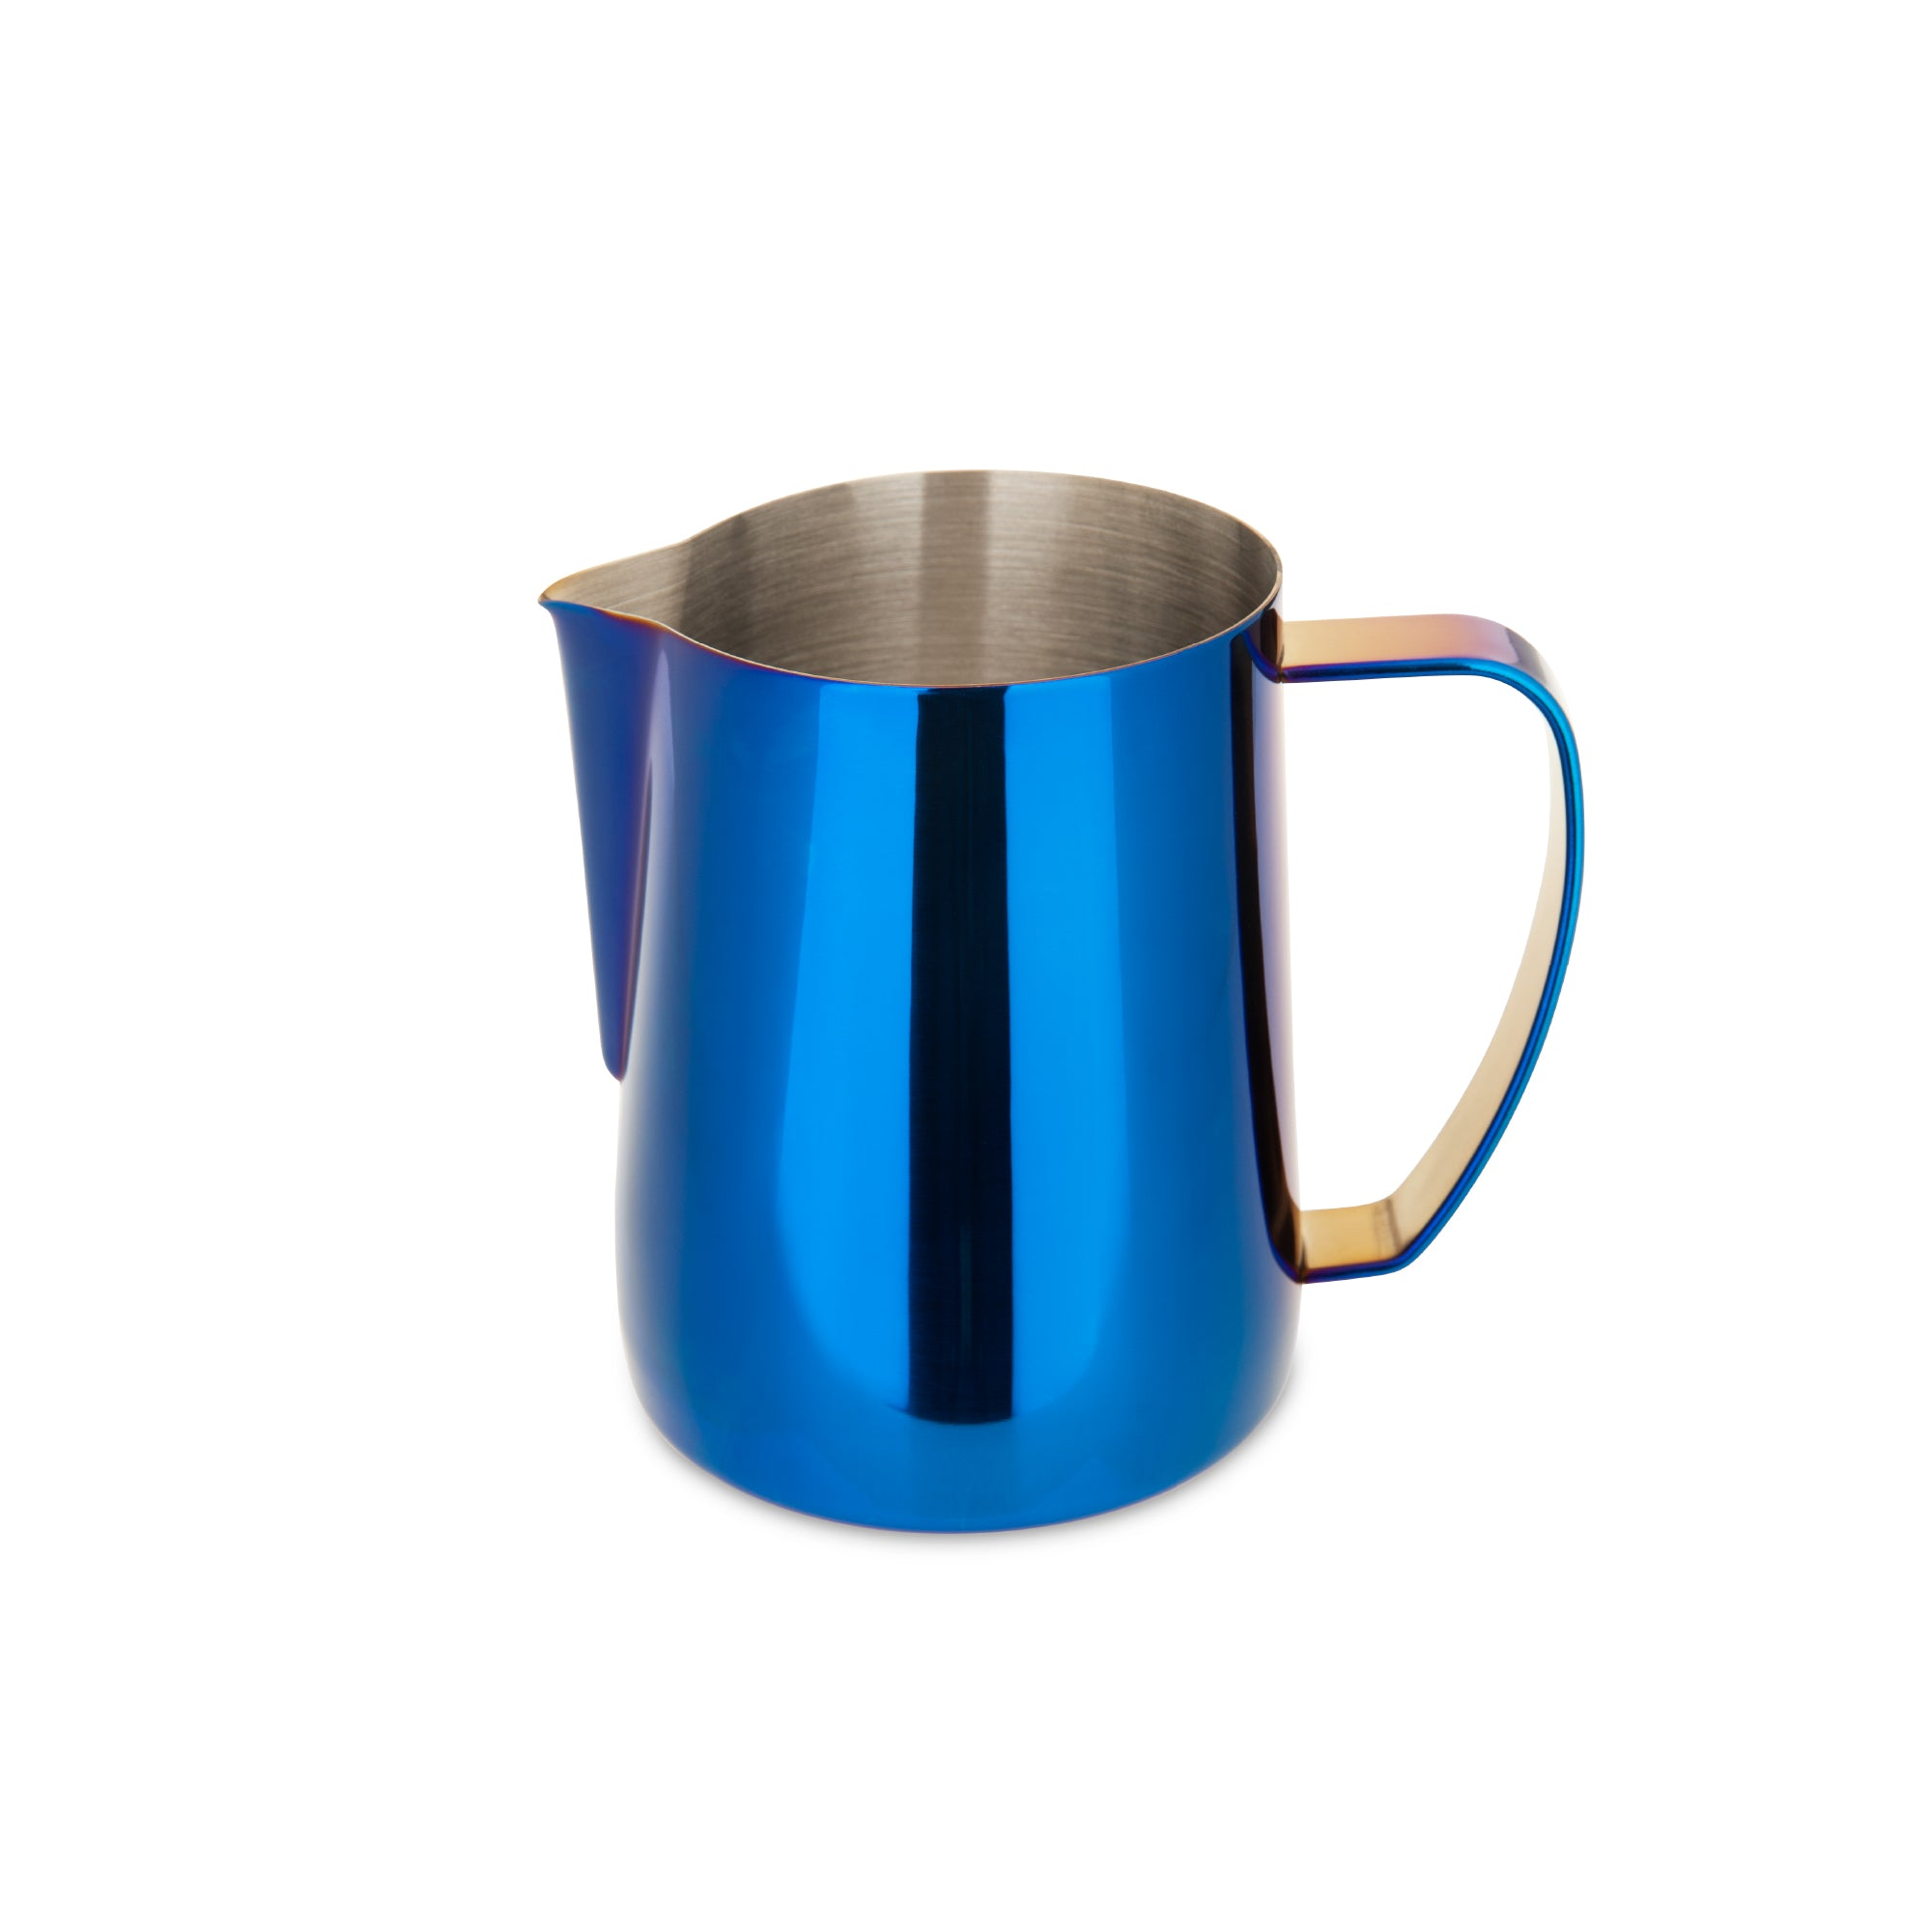 EspressoWorks Stainless Steel Milk Frothing Jug - Blue (600ml)